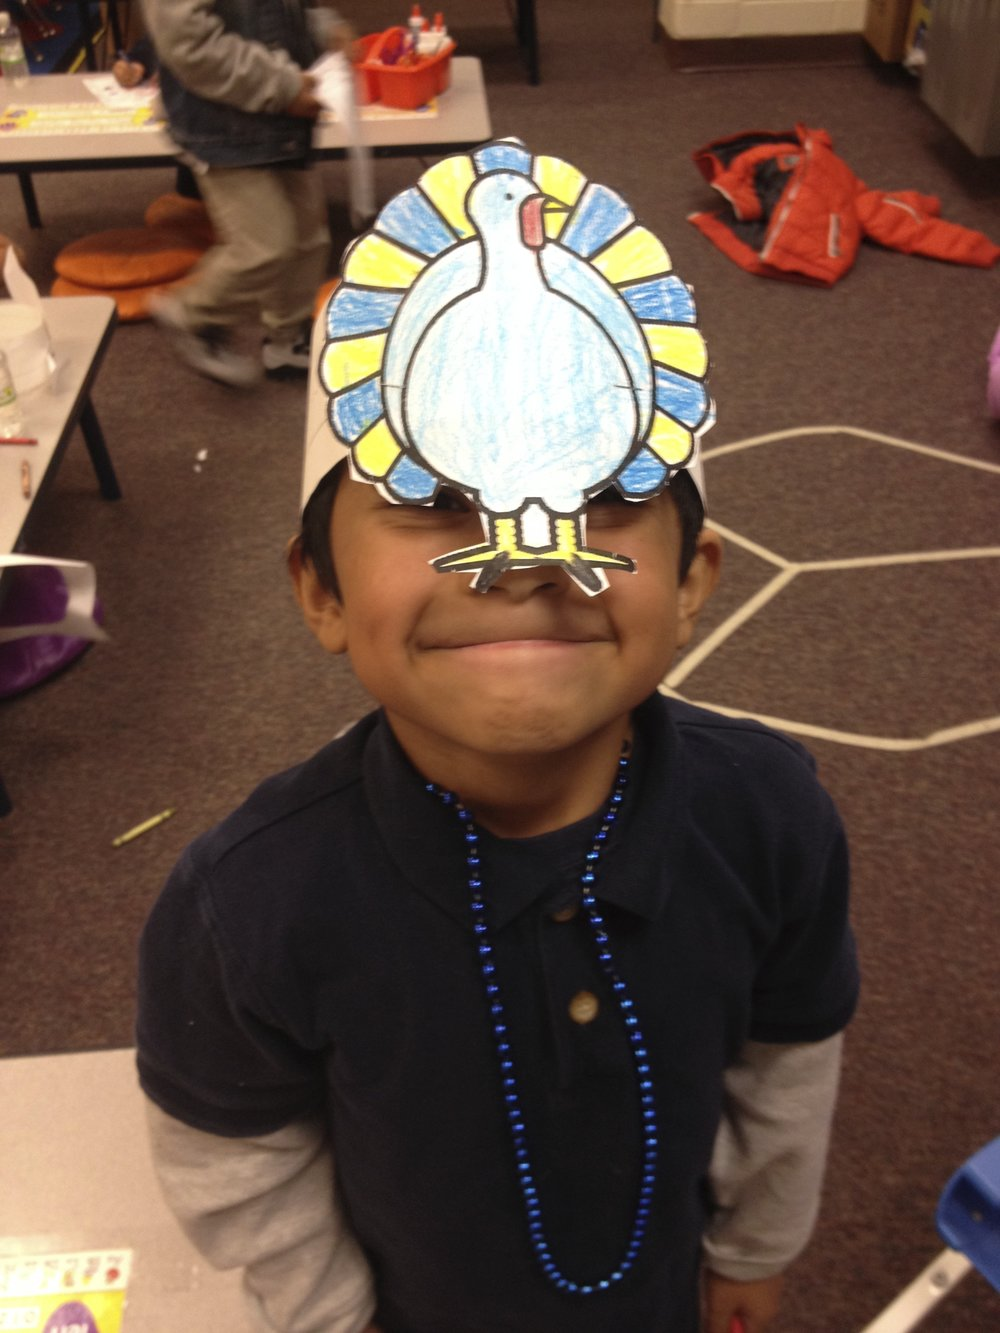 This is just a really cute picture of my student with the Peace Circle in the background.